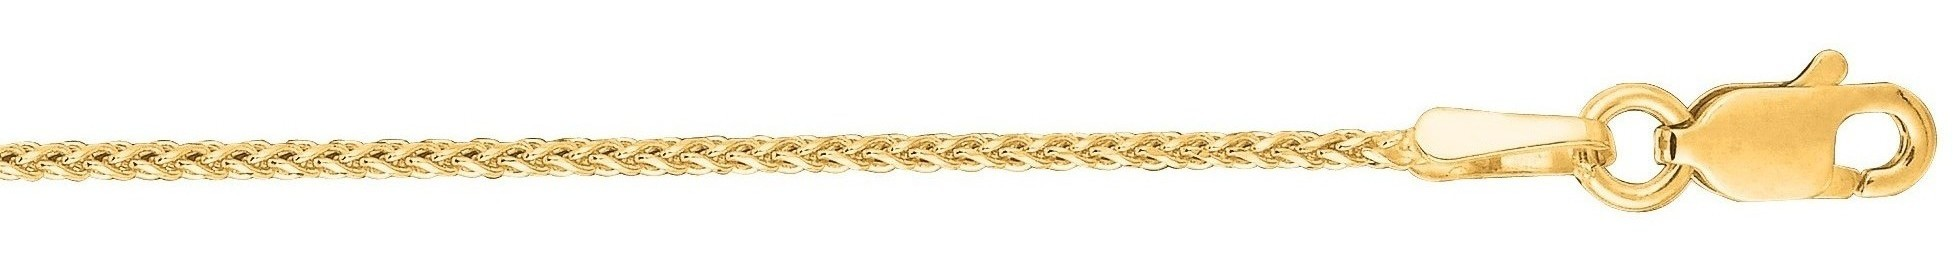 "24"" 14K Yellow Gold 1.1mm (0.04"") Polished Round Diamond Cut Wheat Chain w/ Lobster Clasp"